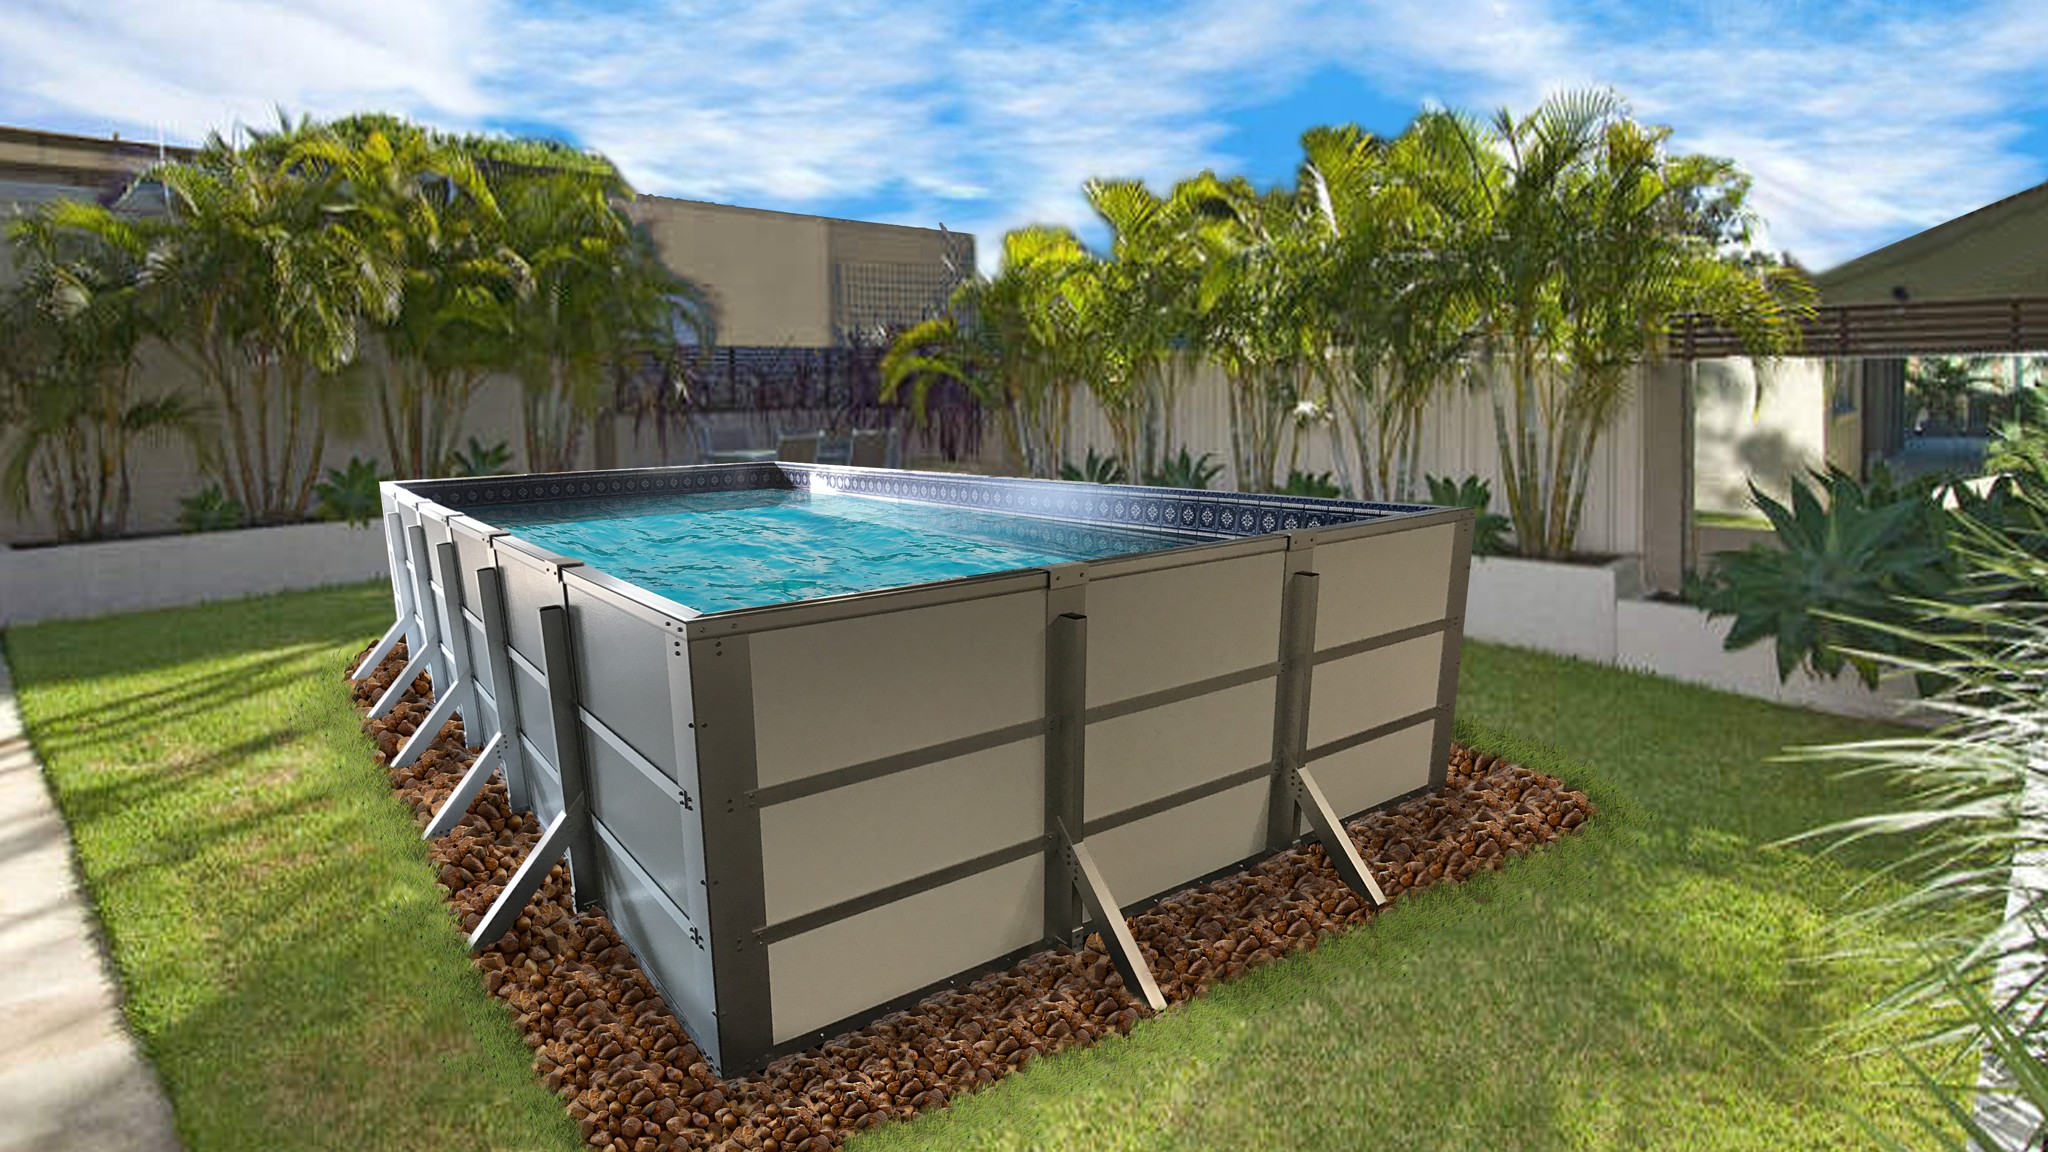 HERCULES MODULAR ABOVEGROUND RECTANGULAR POOL FOR 2019 – swimming ...